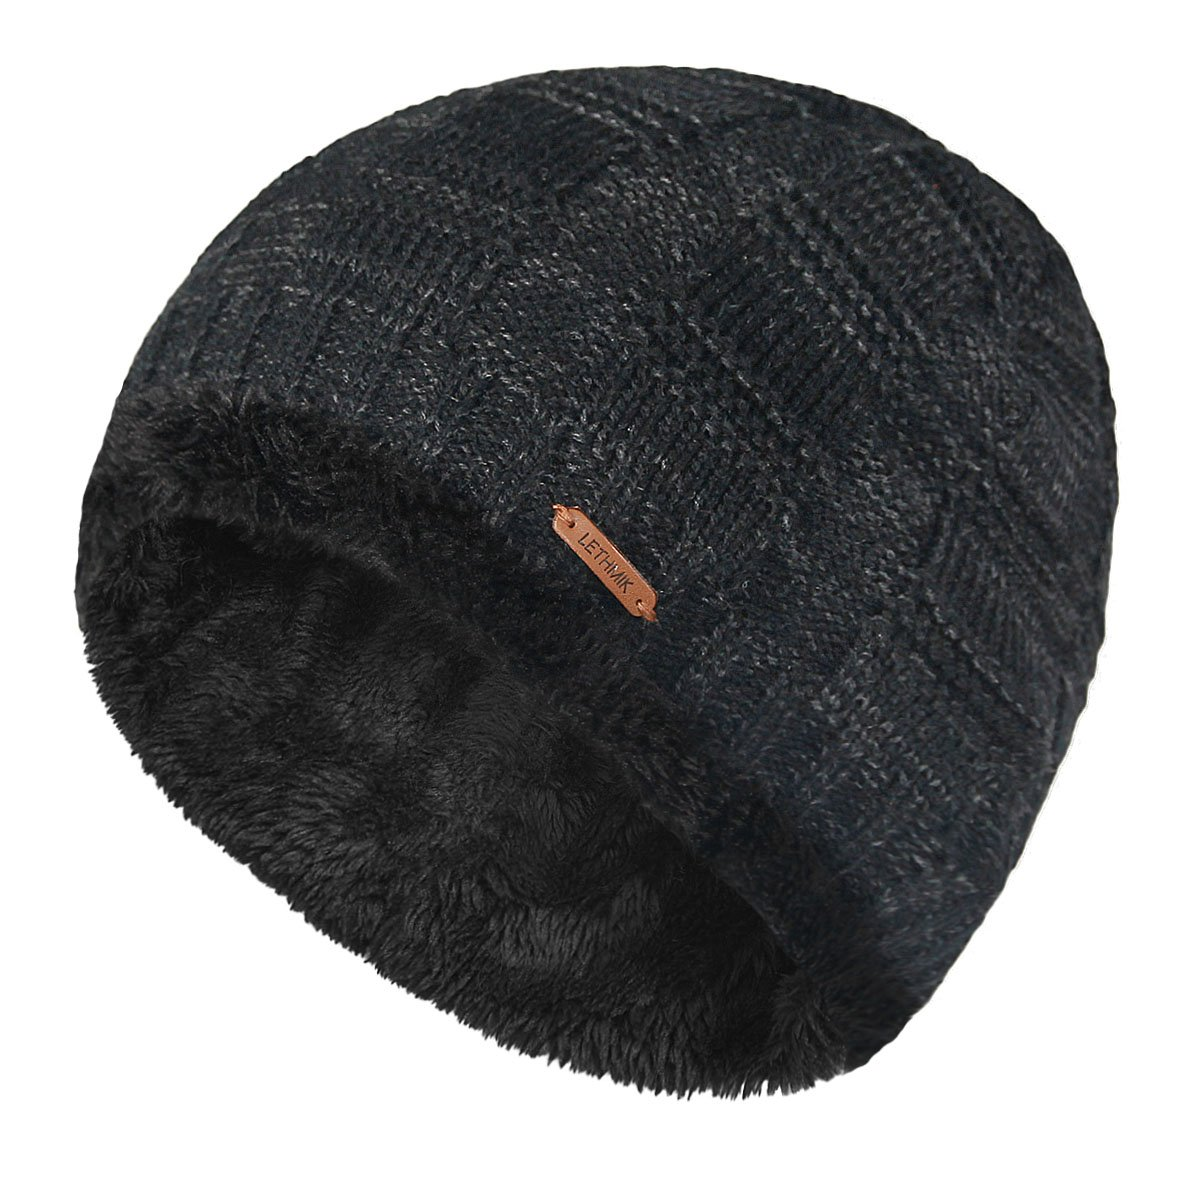 e497a9263a5 LETHMIK Unique Ribbed Knit Beanie Warm Thick Fleece Lined Hat Mens Winter  Skull Cap Black at Amazon Men s Clothing store